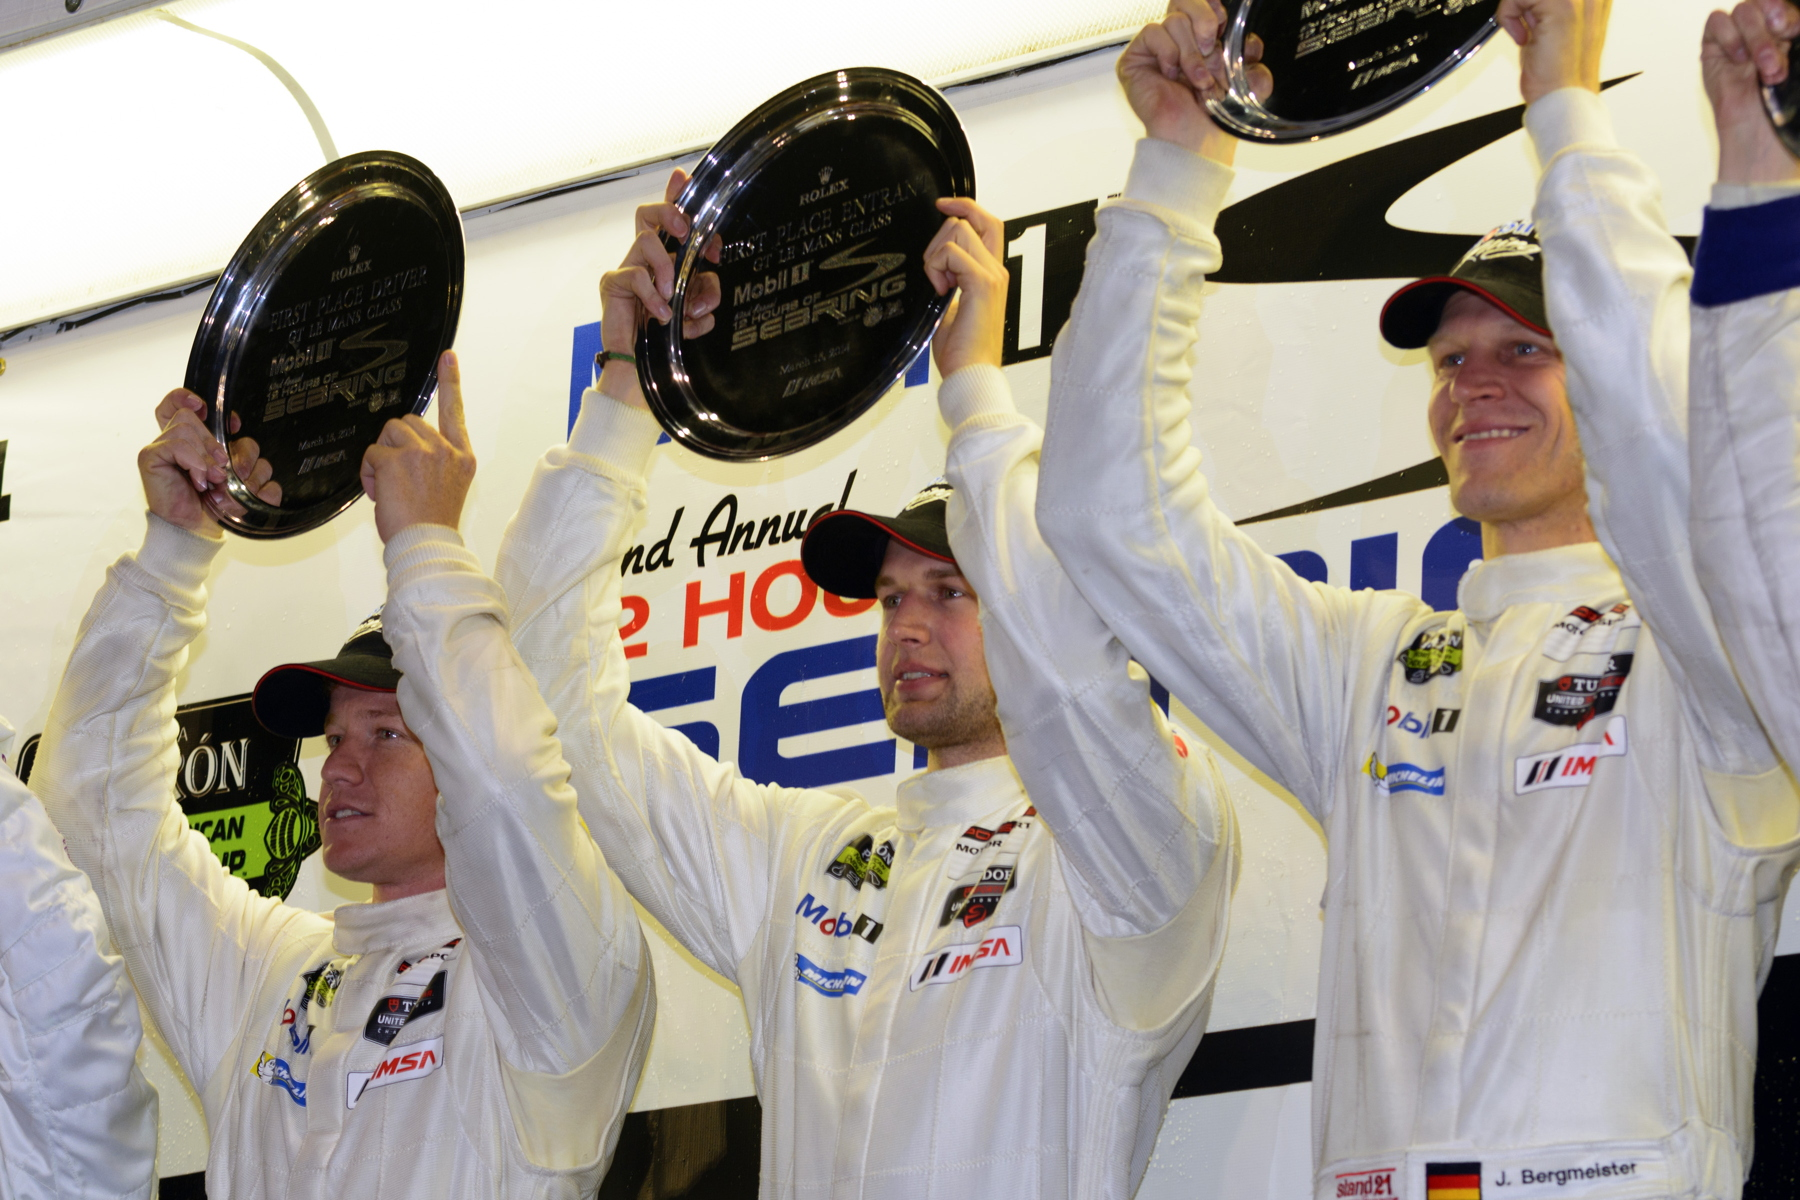 Florida continued to be a happy hunting ground with the no. 912 crew triumphing at Sebring.